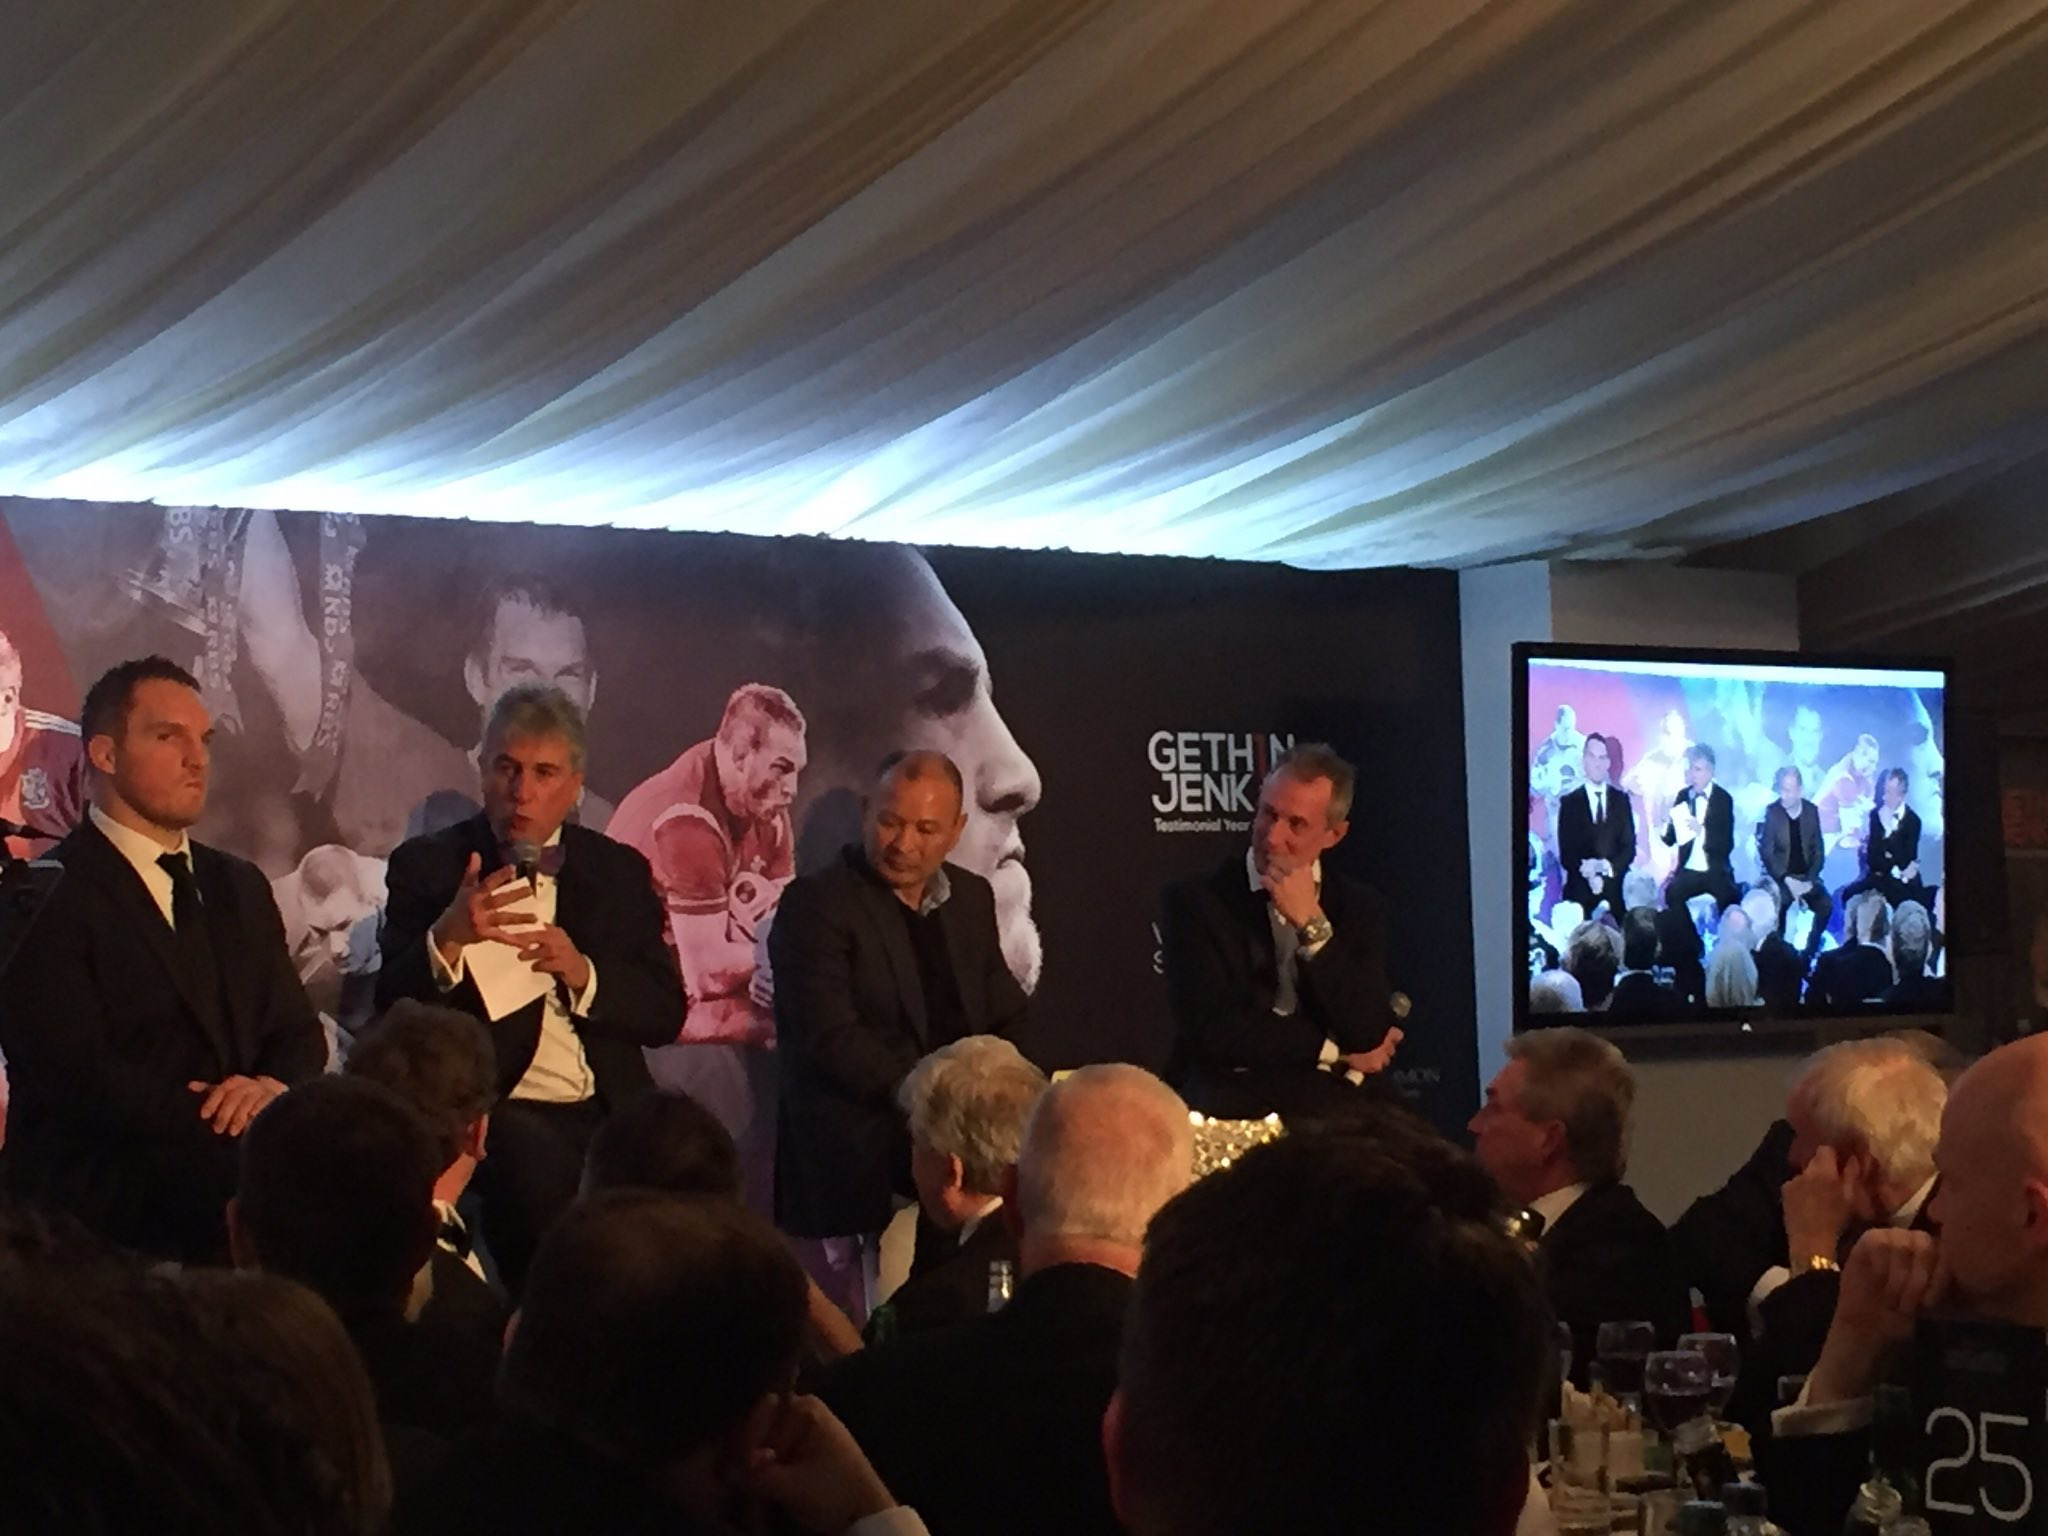 View the photos & behind the scenes from Gethin Jenkins Testimonial Dinner